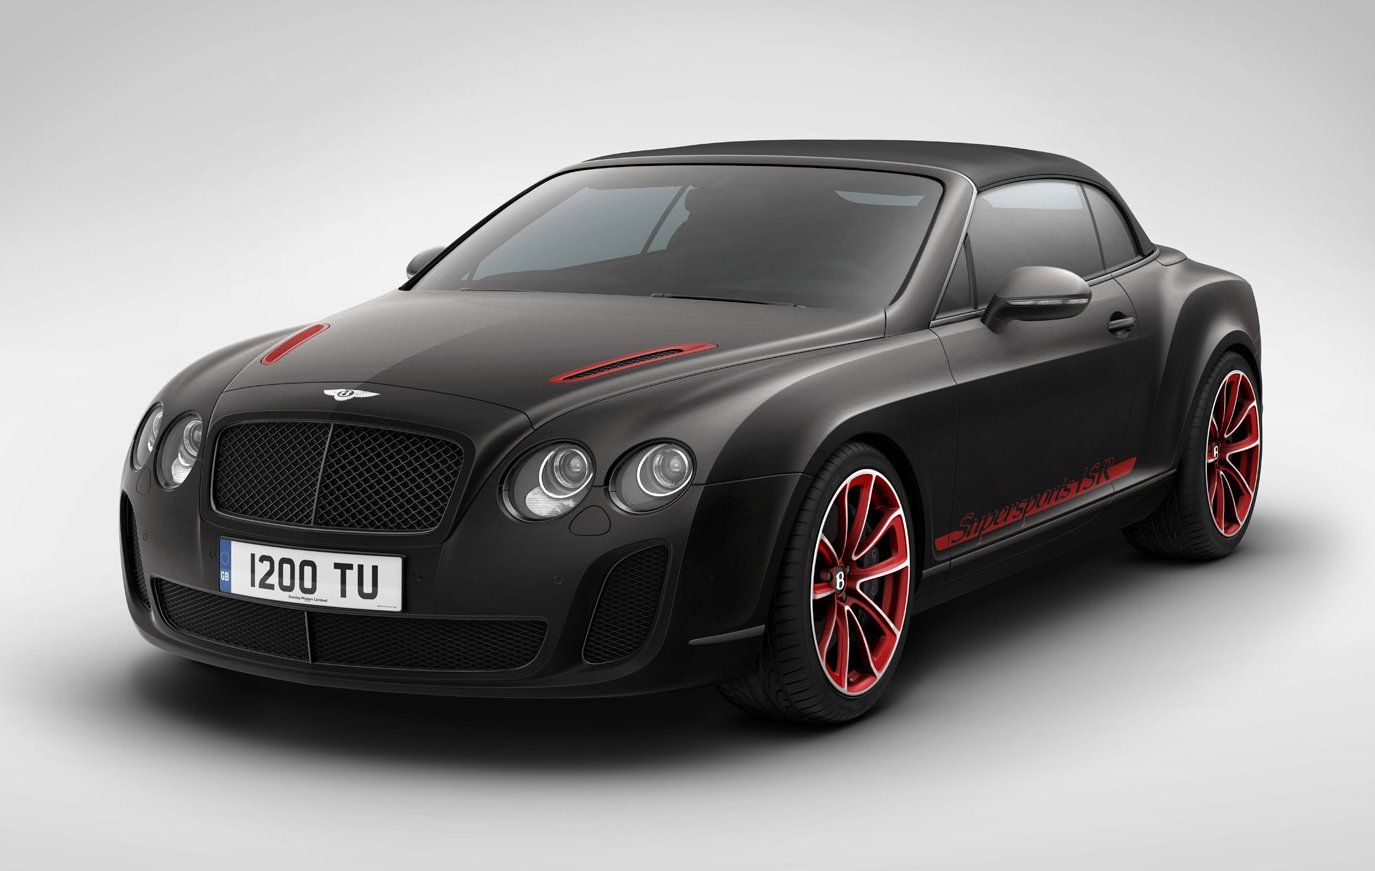 bentley continental gt supersports convertible ice speed record only cars and cars. Black Bedroom Furniture Sets. Home Design Ideas